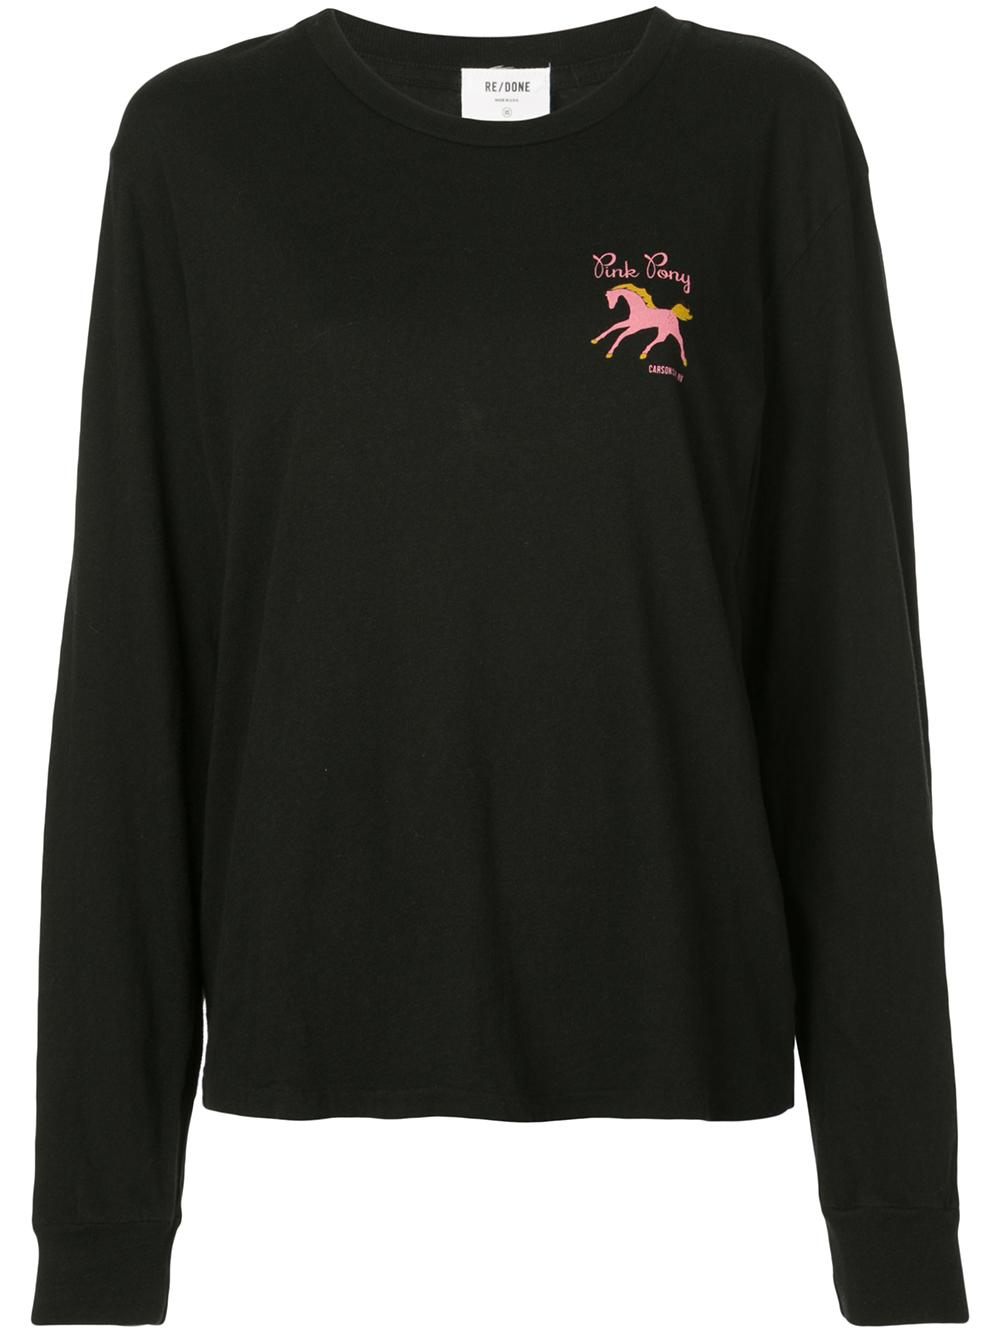 90s Long Sleeve Pink Pony Tee Item # 029-2WGTL5